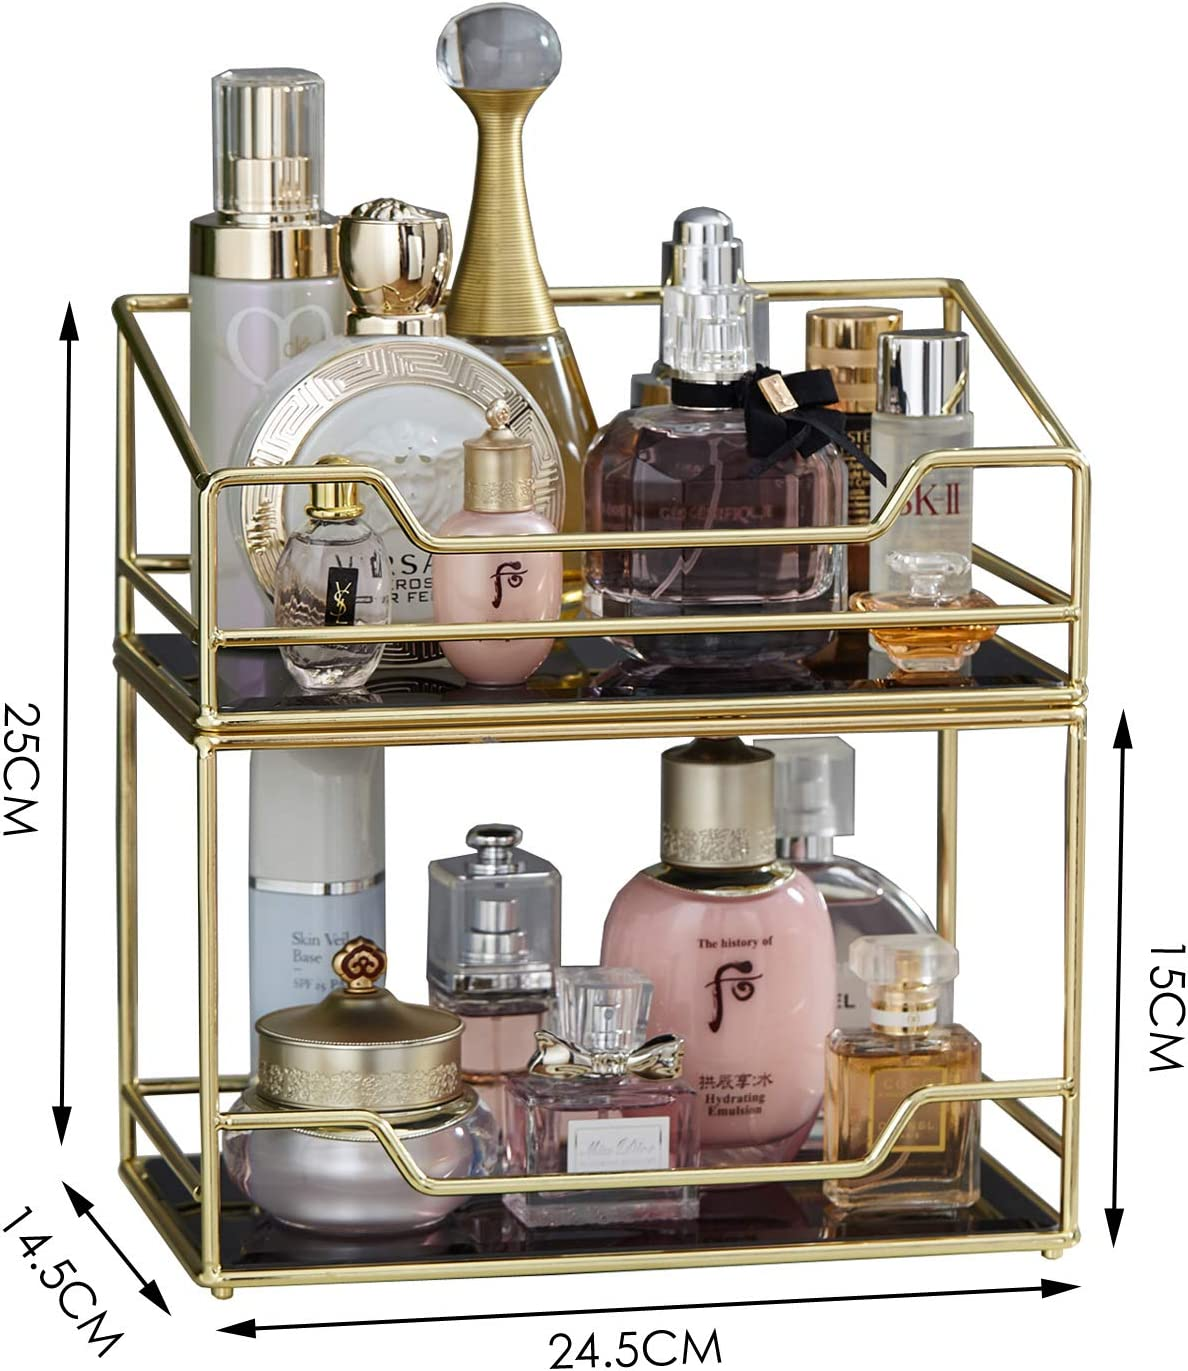 Amazon Com 2layer Stackable Glass Perfume Tray 2 Tirer Spacious Gold Black Mirror Metal Bathroom Tray For Makeup Jewelry Organizer Ornate Decorative Tray For Vanity Desser Countertop Kitchen Home Kitchen